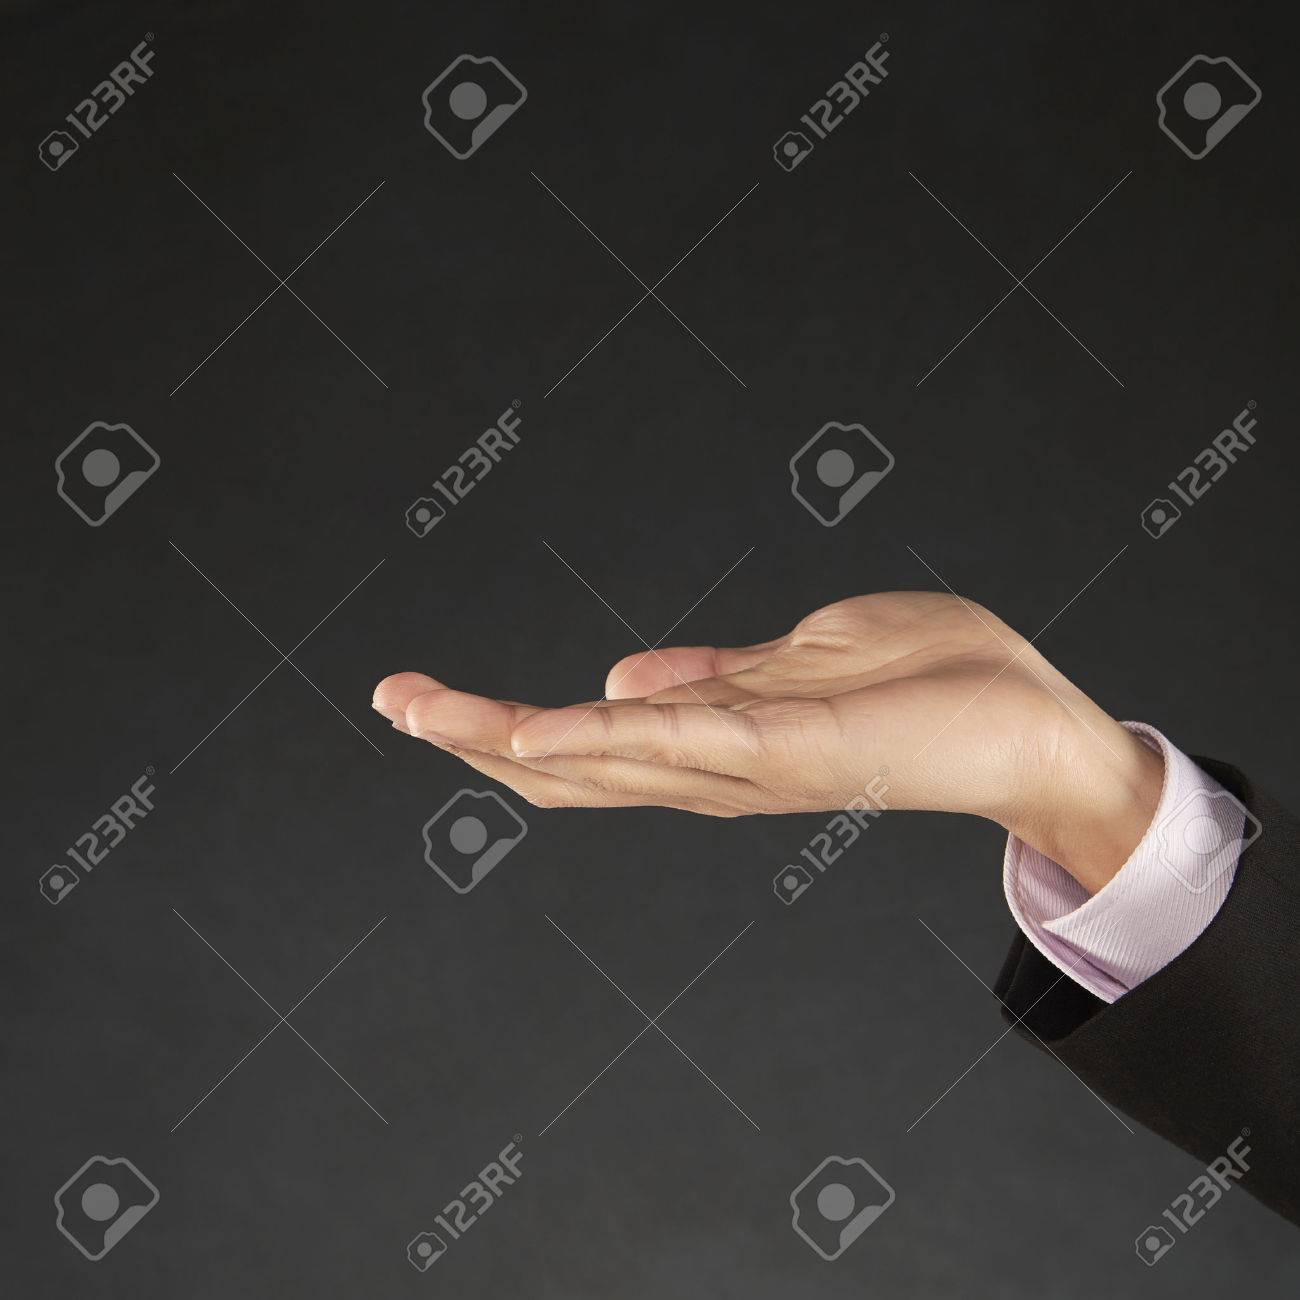 Human hand reaching out Stock Photo - 22831927